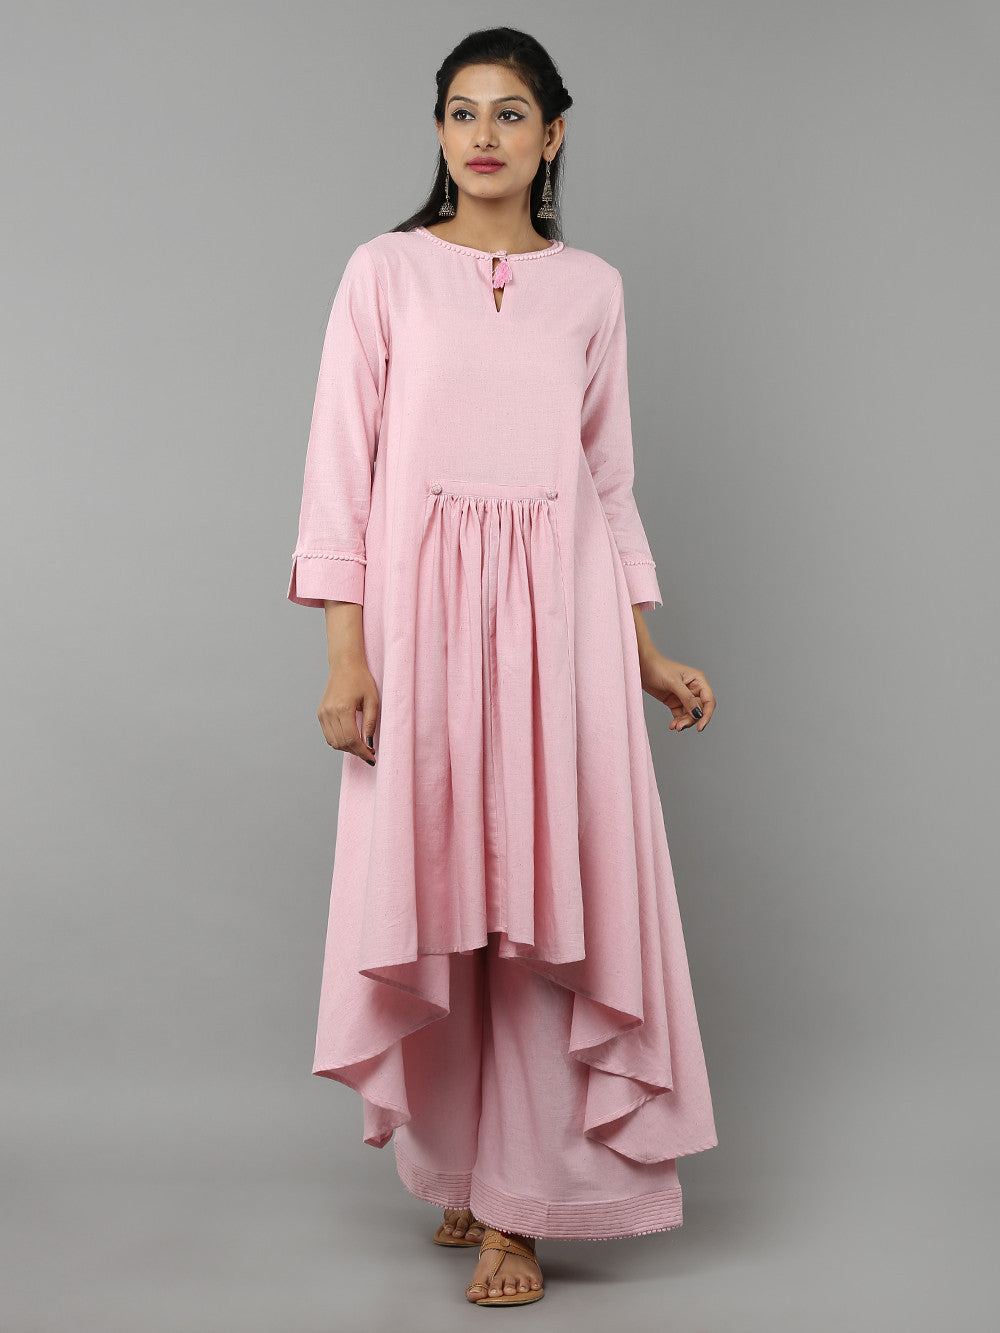 Pastel pink kurta-palazzo set from The Loom